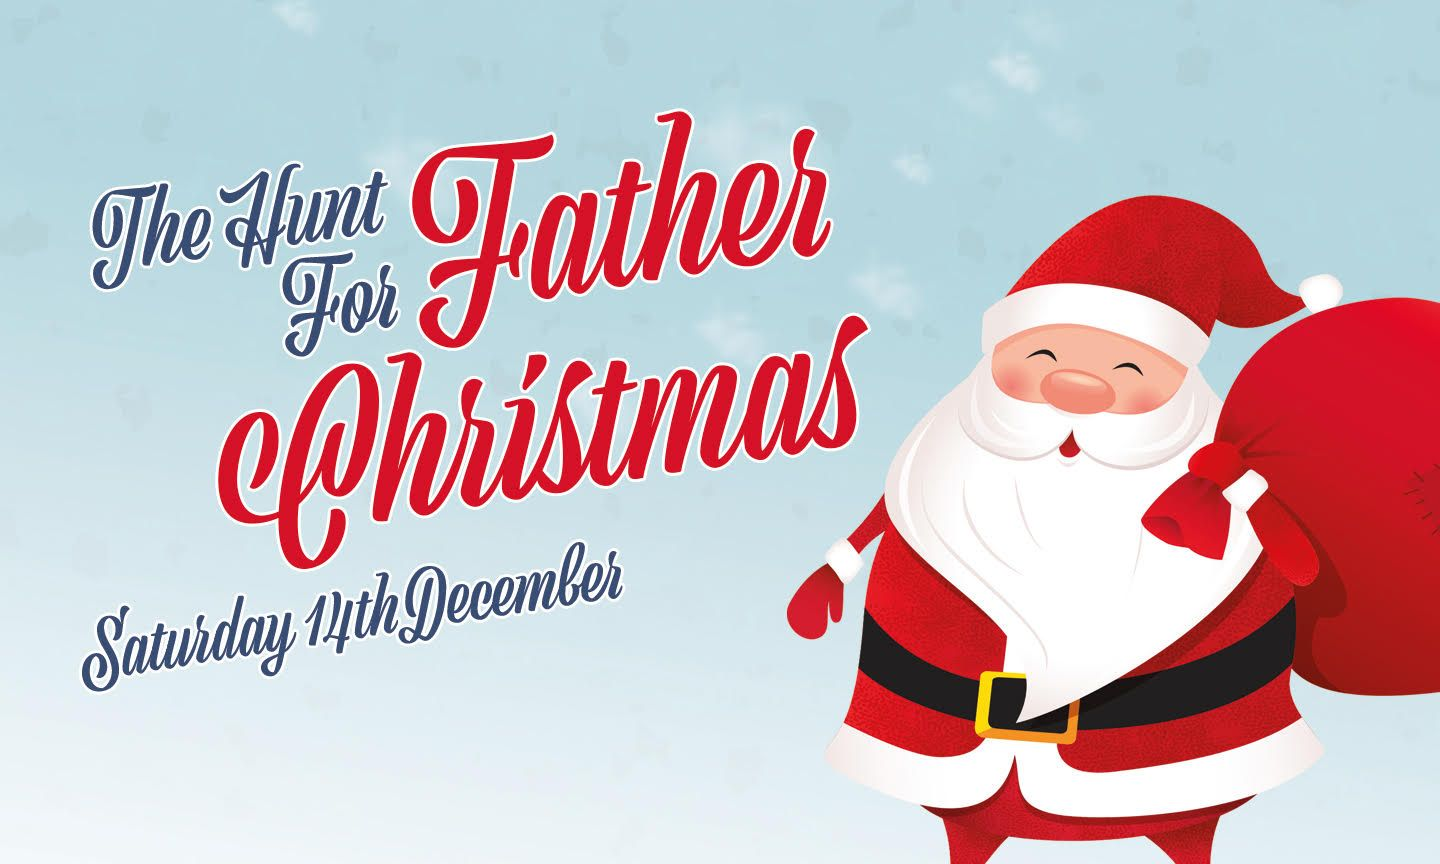 The Hunt for Father Christmas, Saturday 14th December